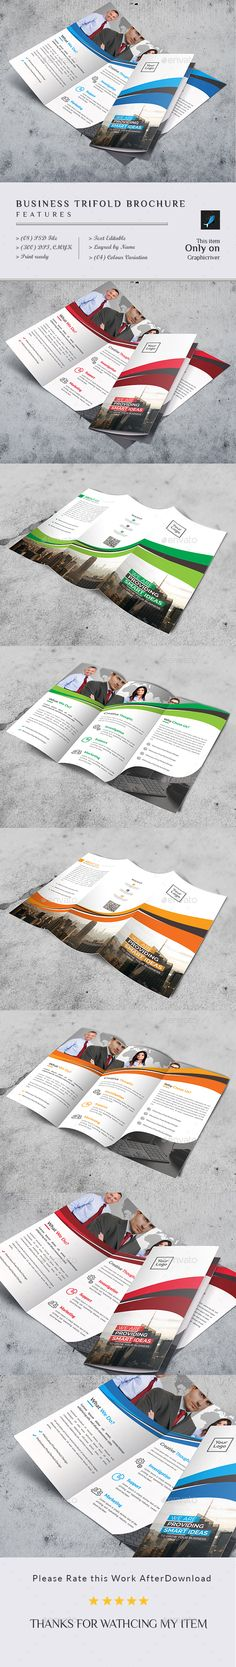 Tri-Fold #Brochure - #Brochures Print #Templates Download here: https://graphicriver.net/item/trifold-brochure/19249223?ref=alena994